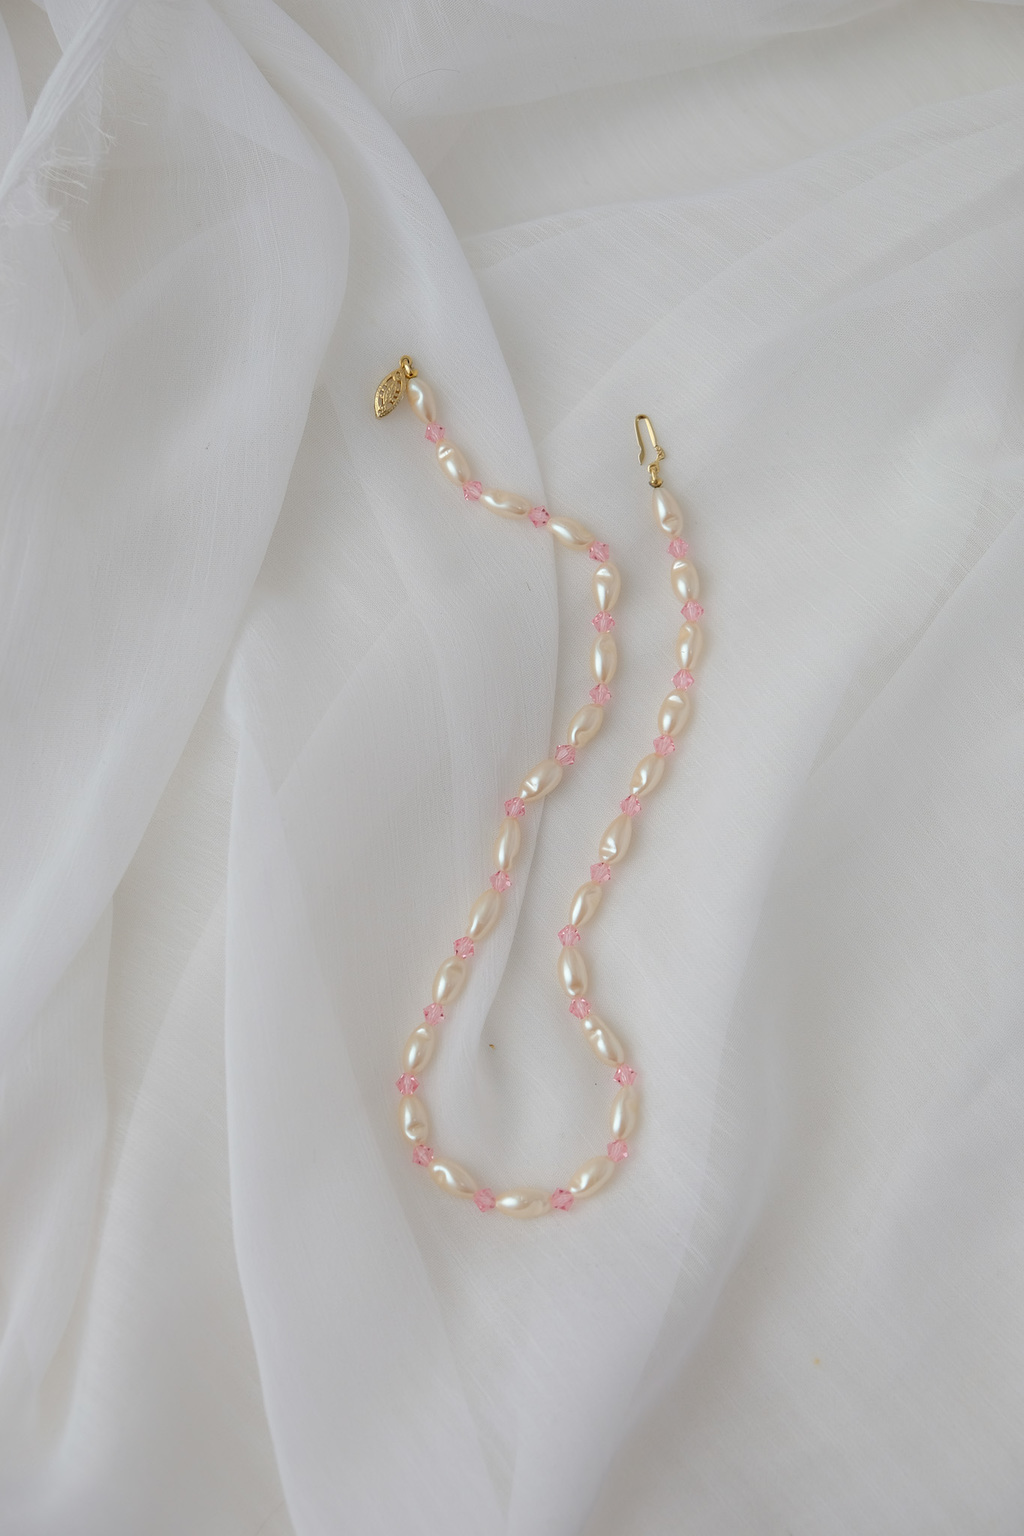 Pink beads & pearls chocker